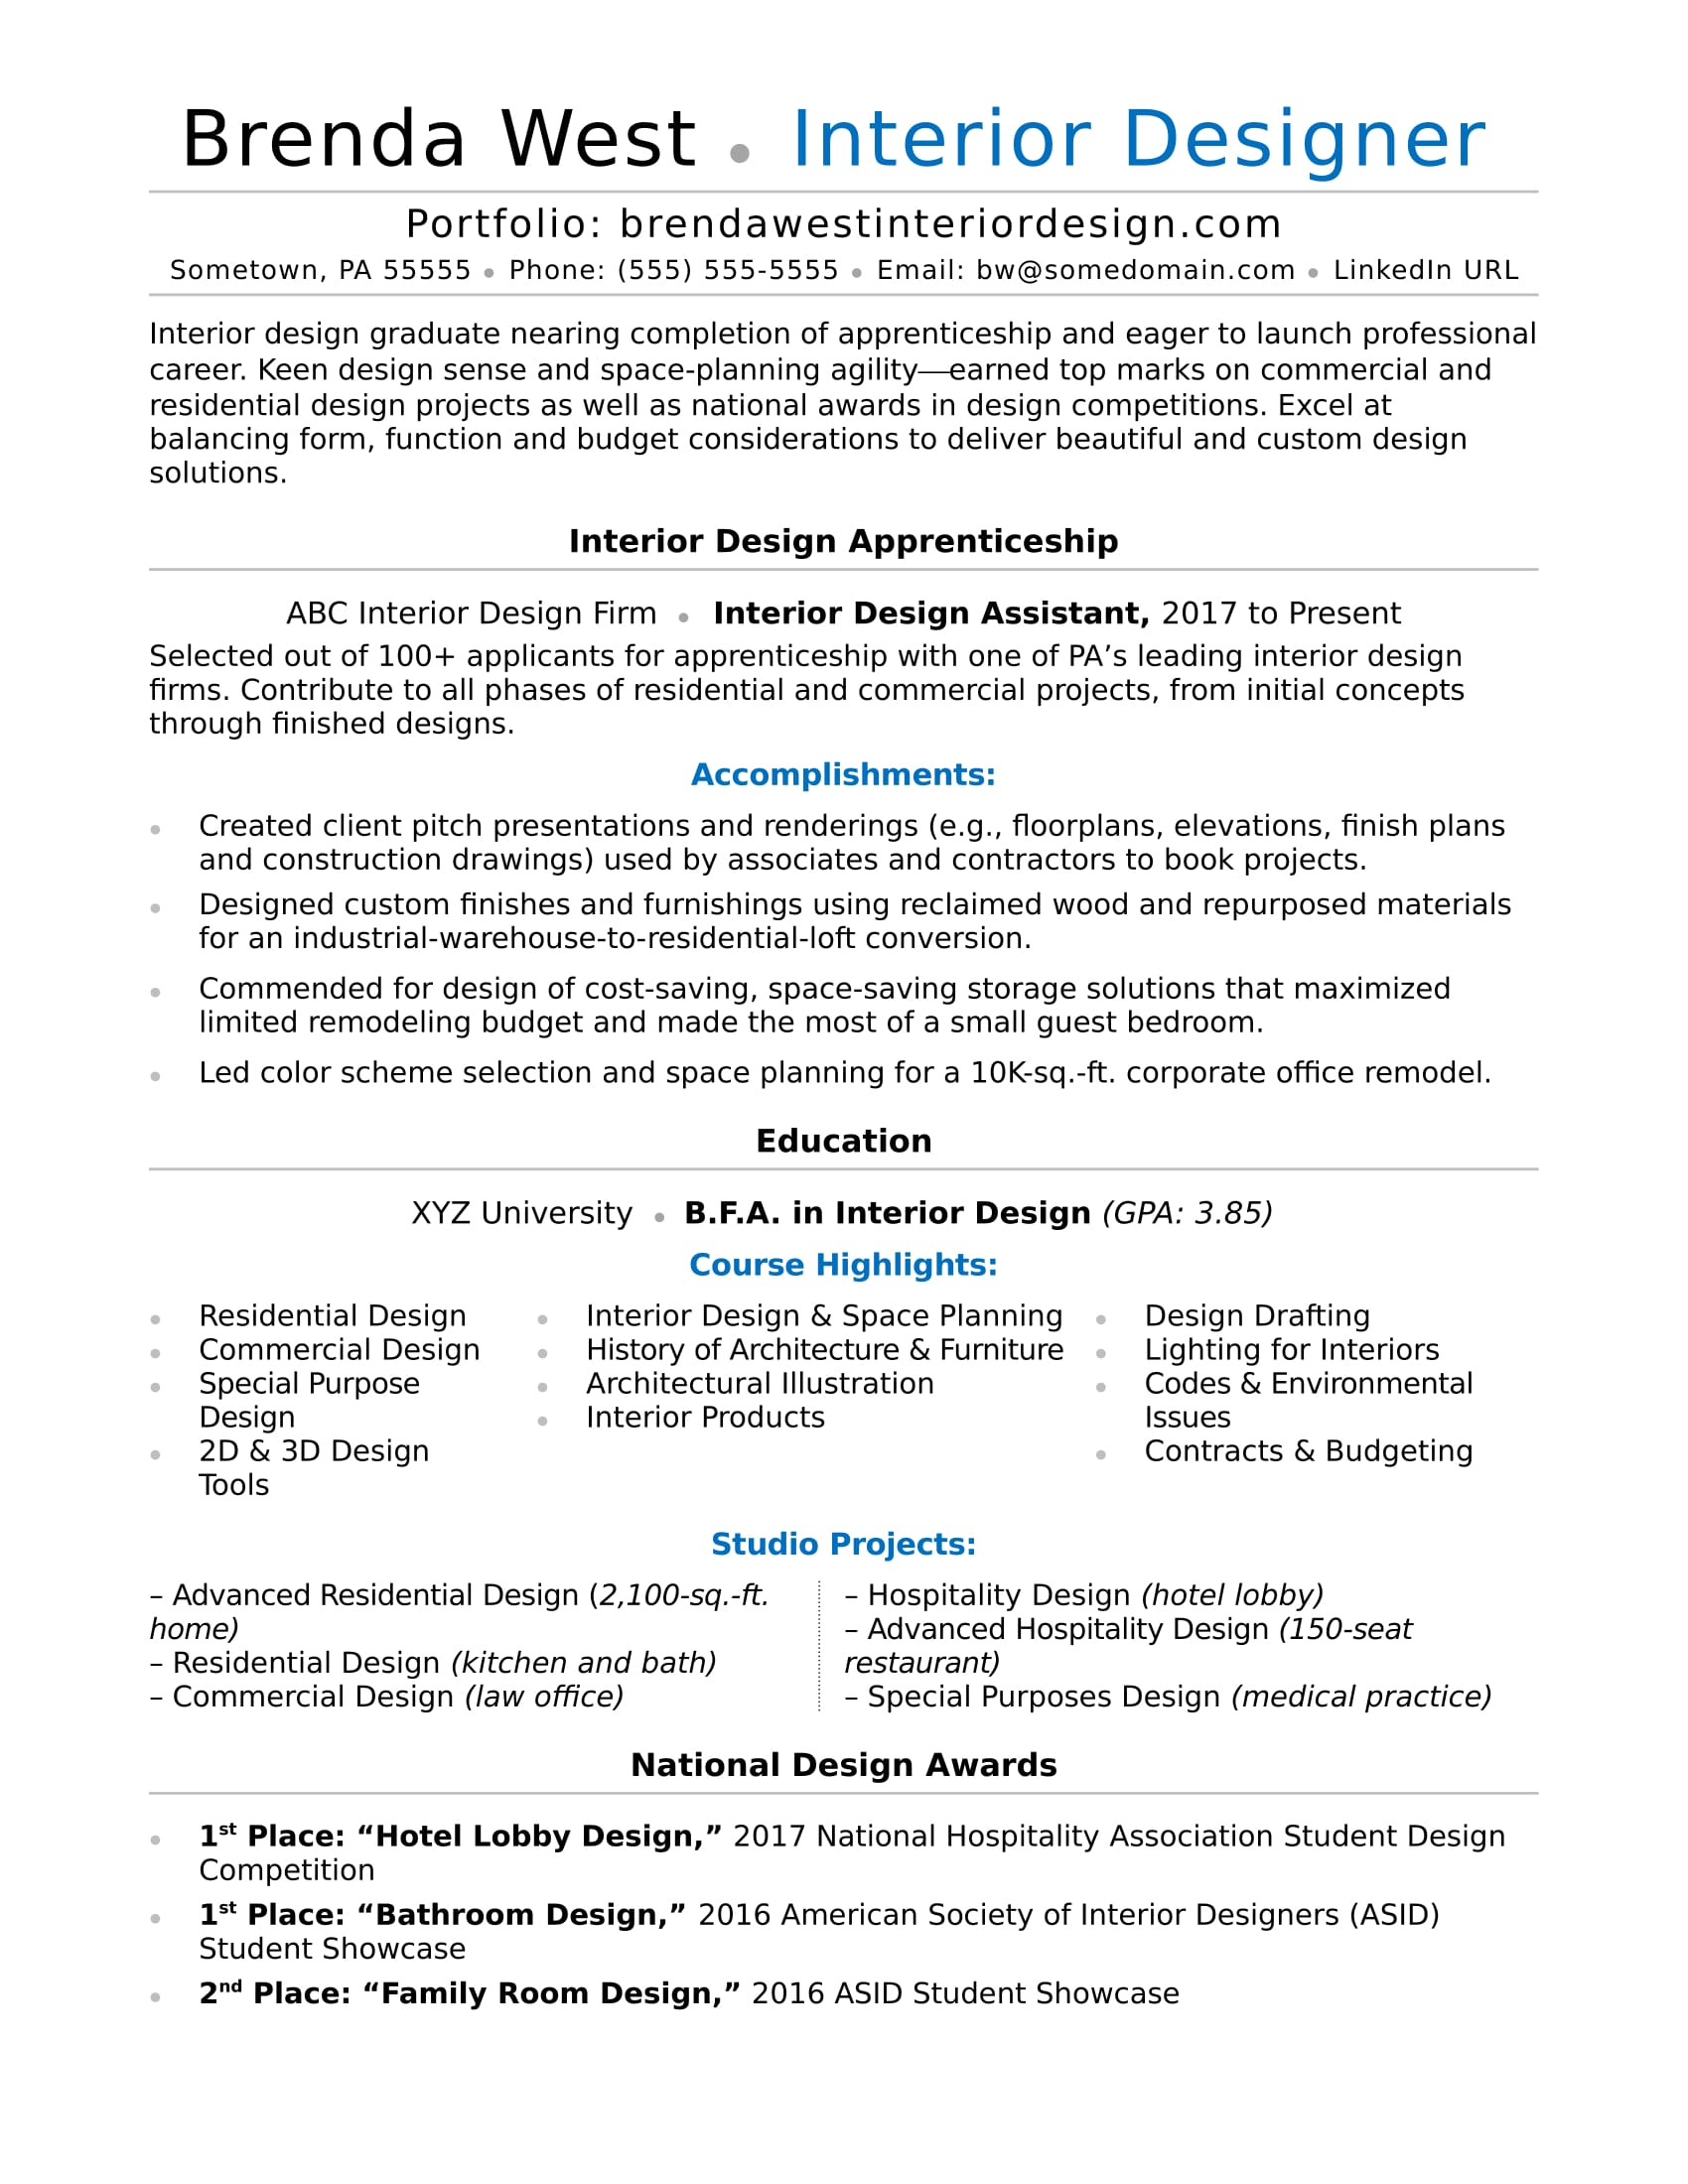 Interior Design Resume Sample | Monster.com